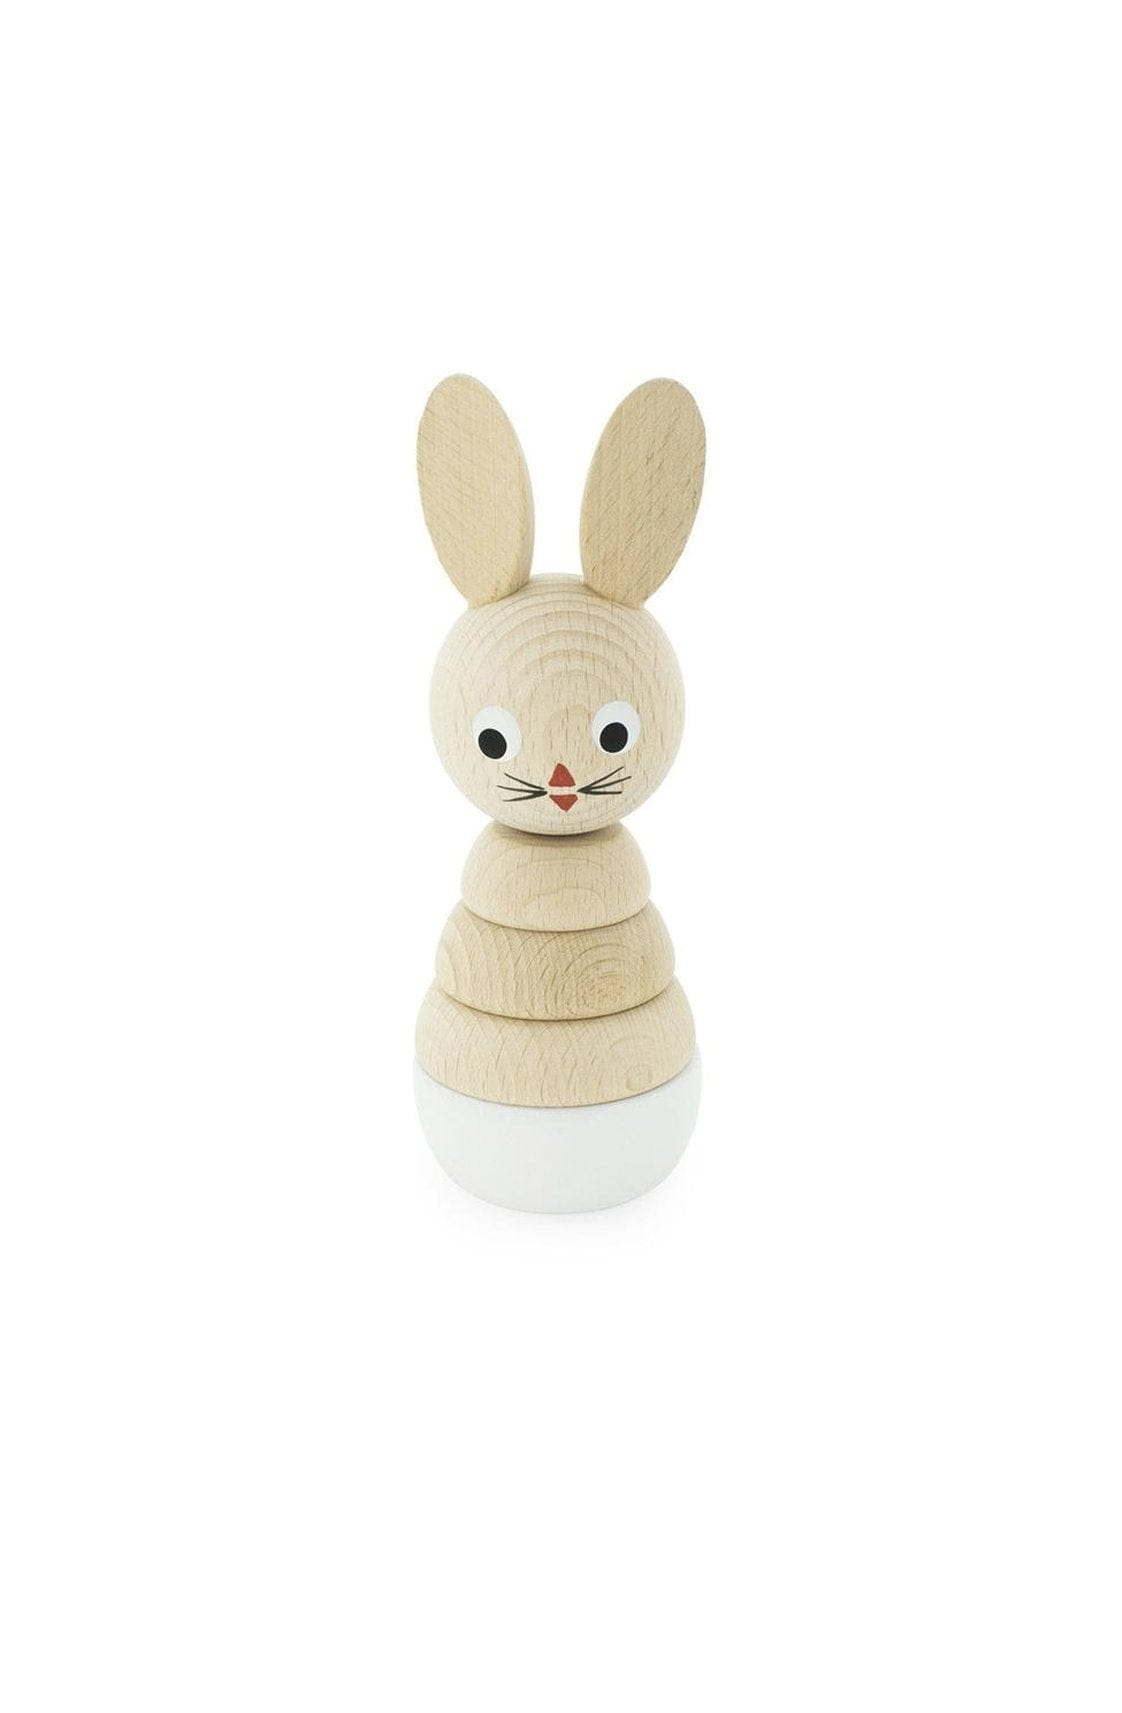 Miva Vacov Wooden Rabbit Stacking Puzzle, White Bunny - Hello Little Birdie